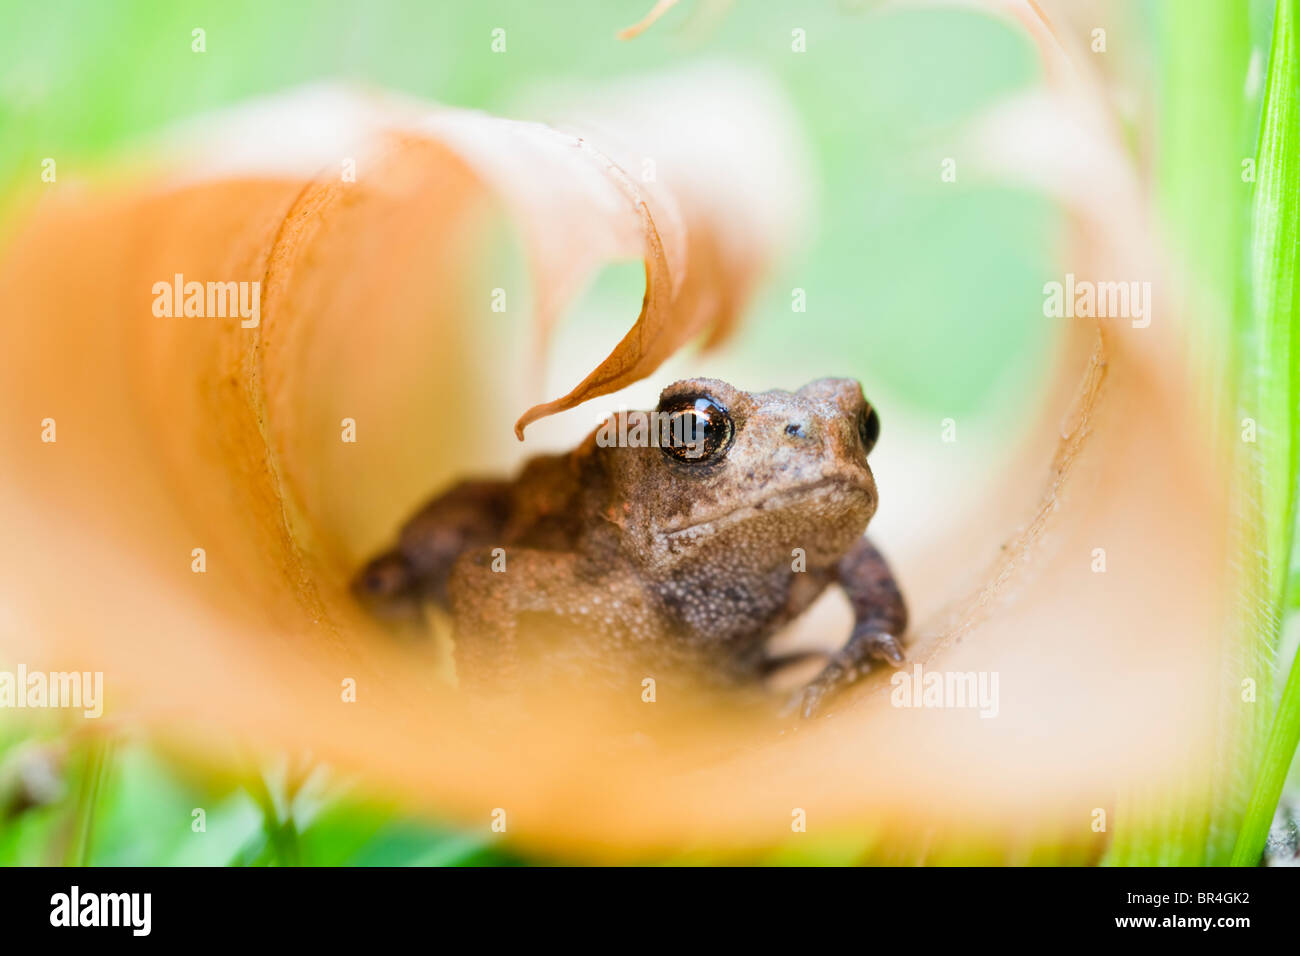 Young Toad in curled up leaf Stock Photo